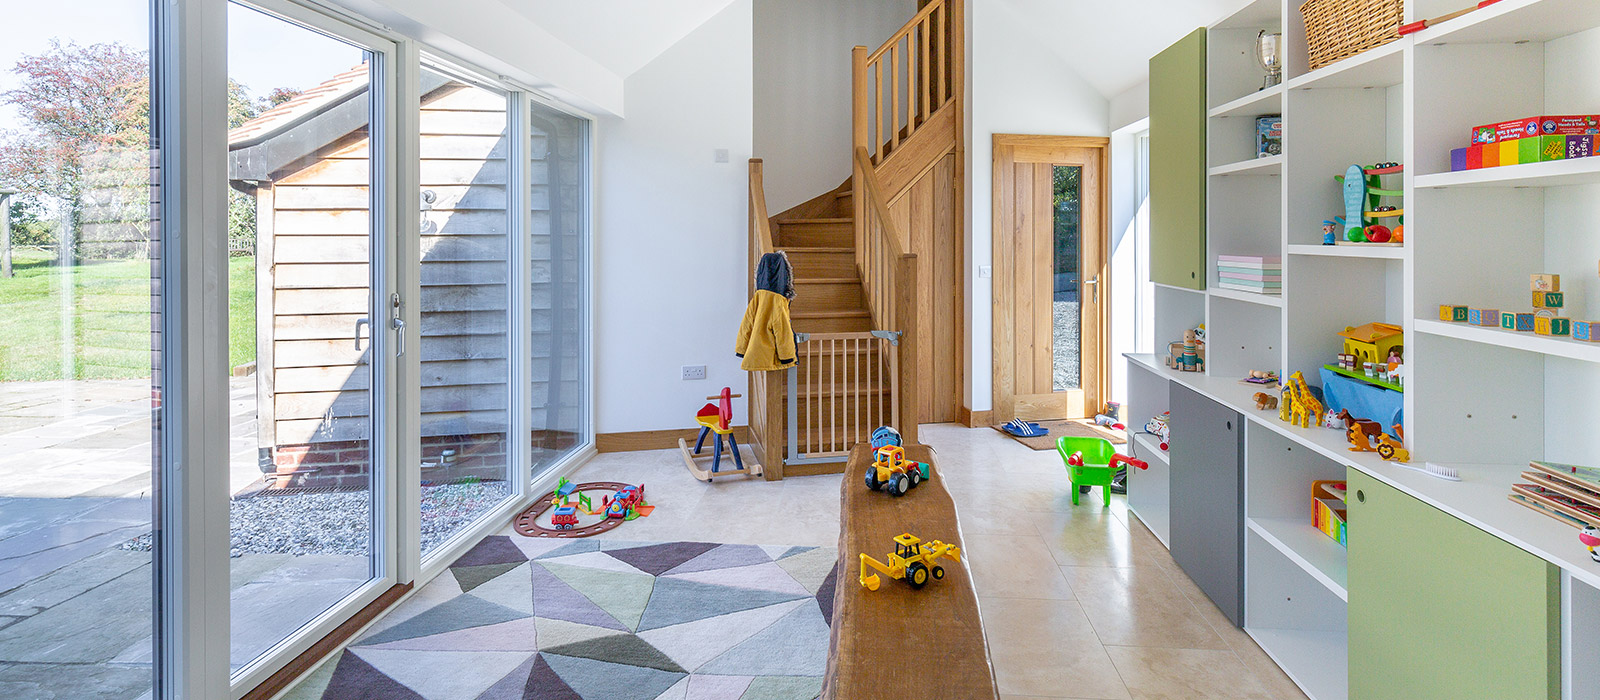 gyd-architecture | playroom link